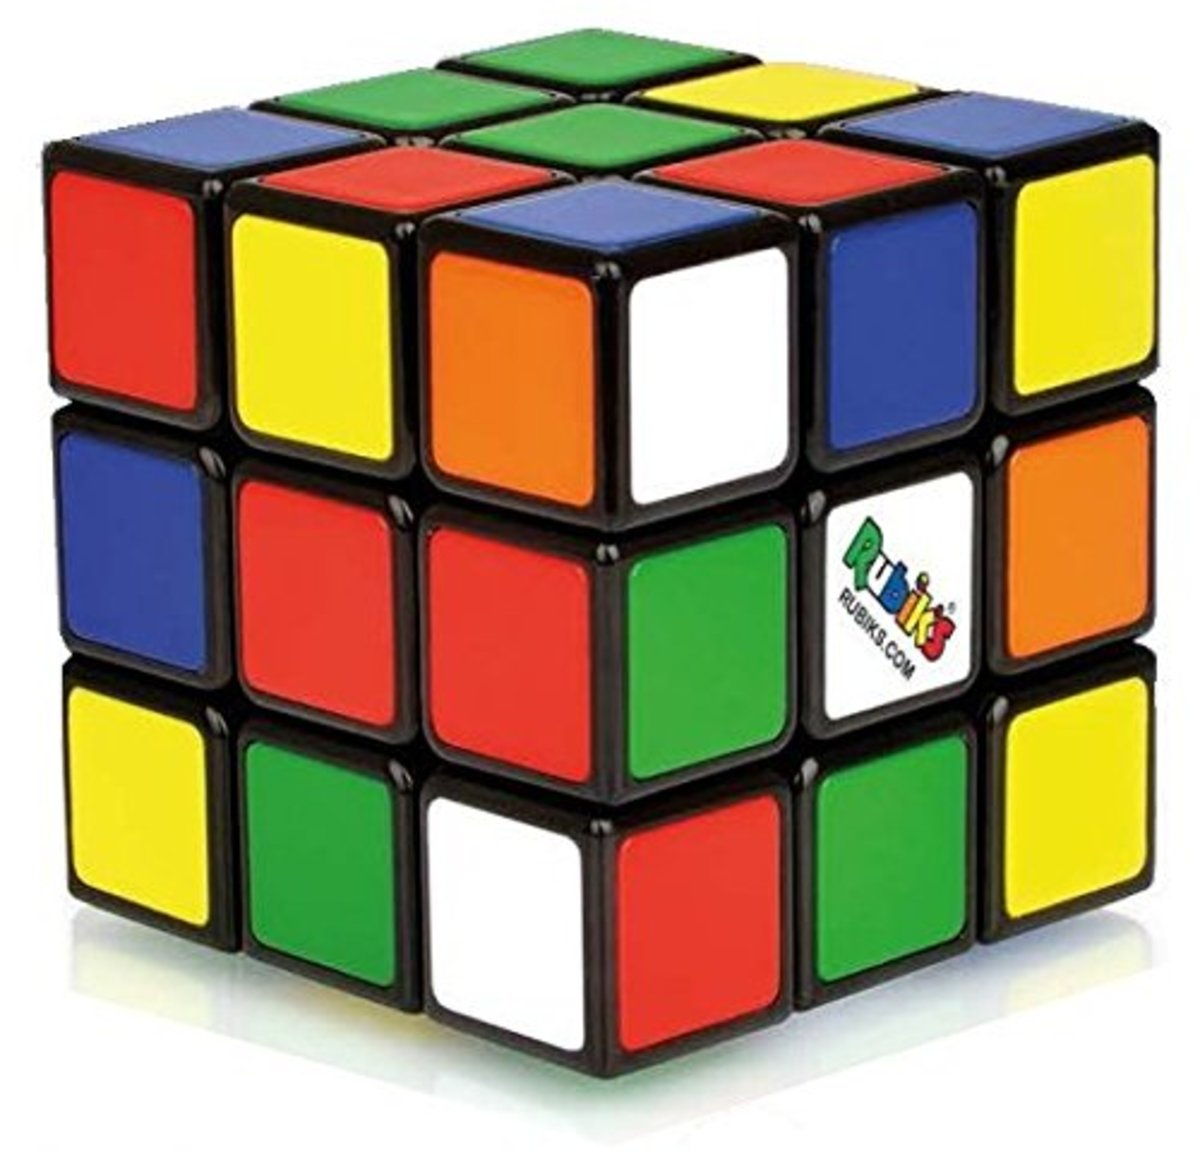 The Best Way to Solve the Rubik's Cube